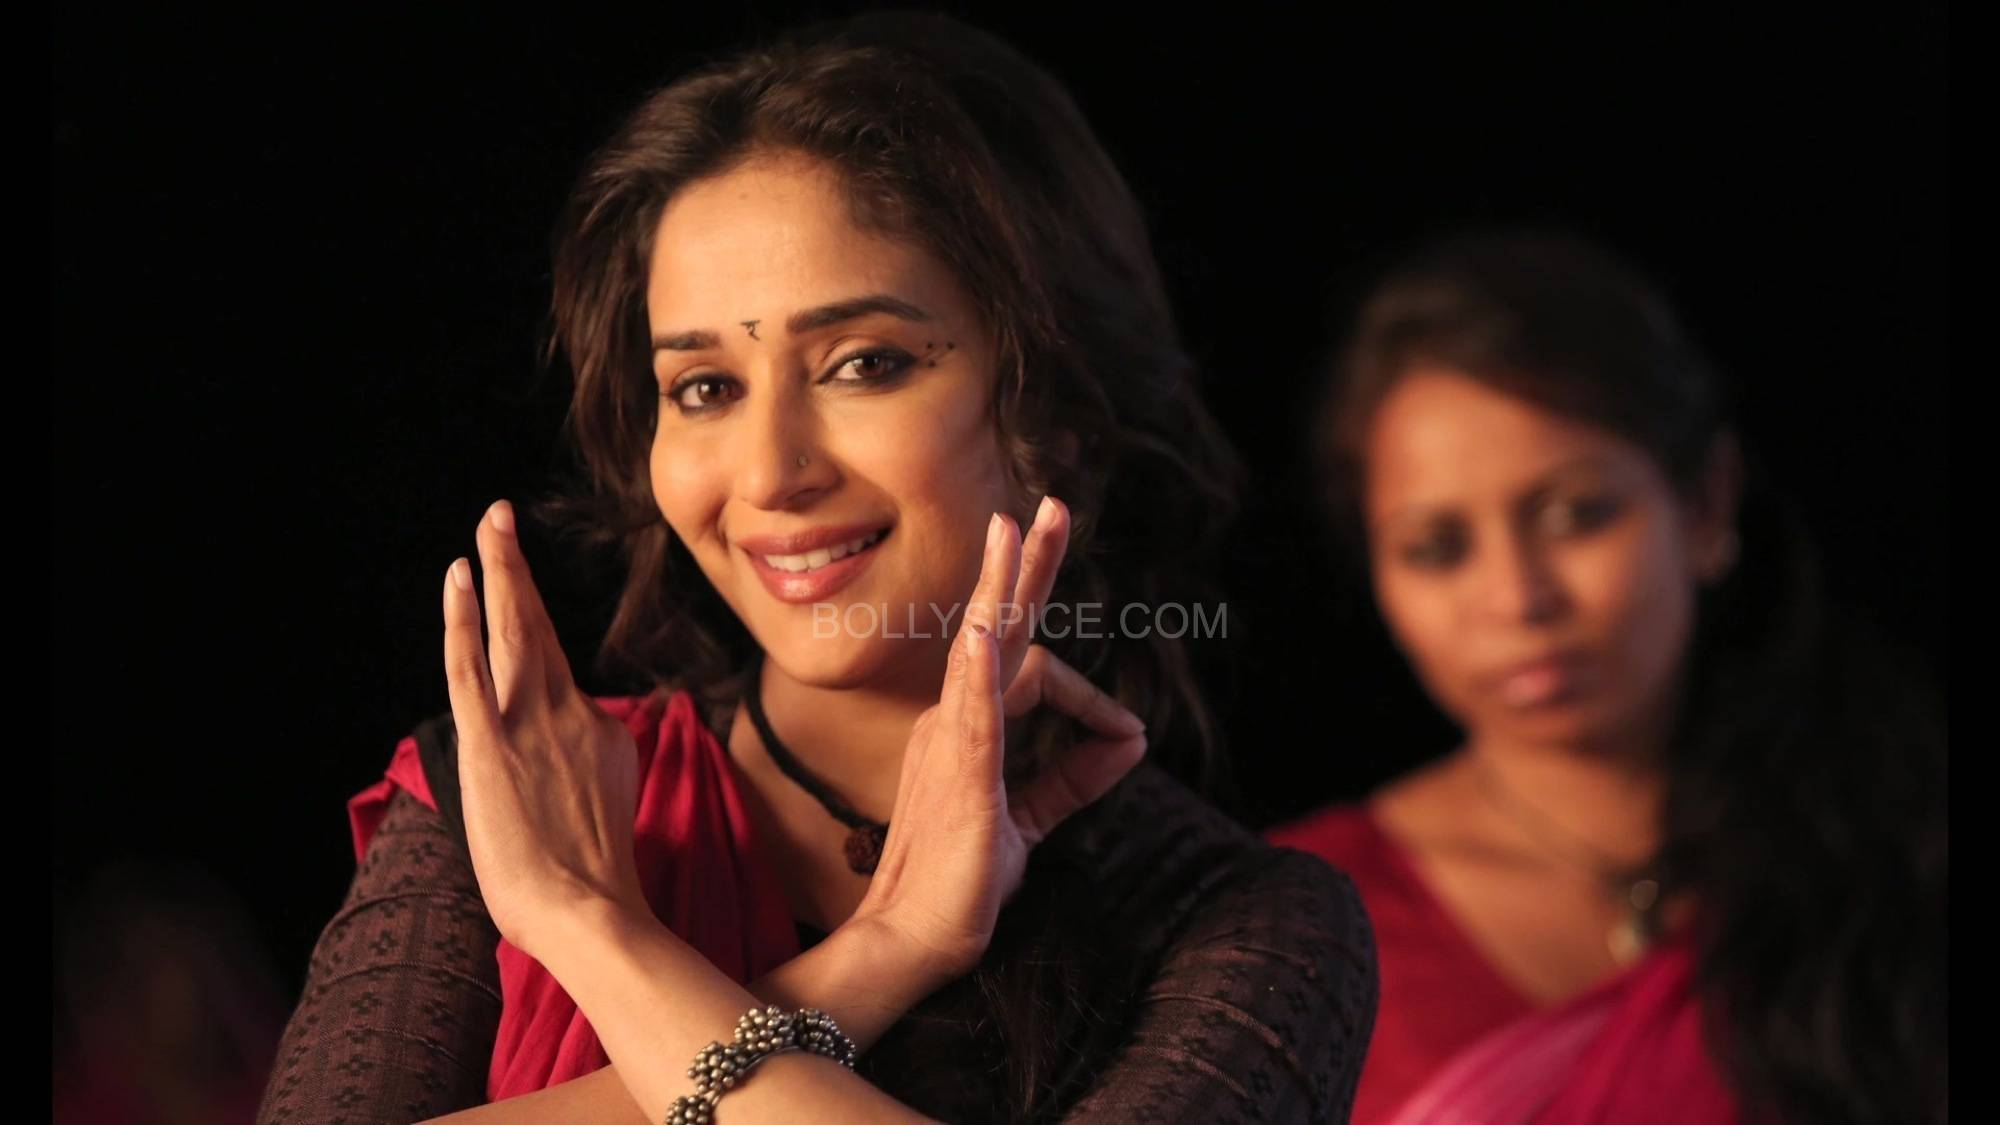 dheemidheemigulaabgang3 The magic of Madhuri in Dheemi Dheemi   Gulaab Gang